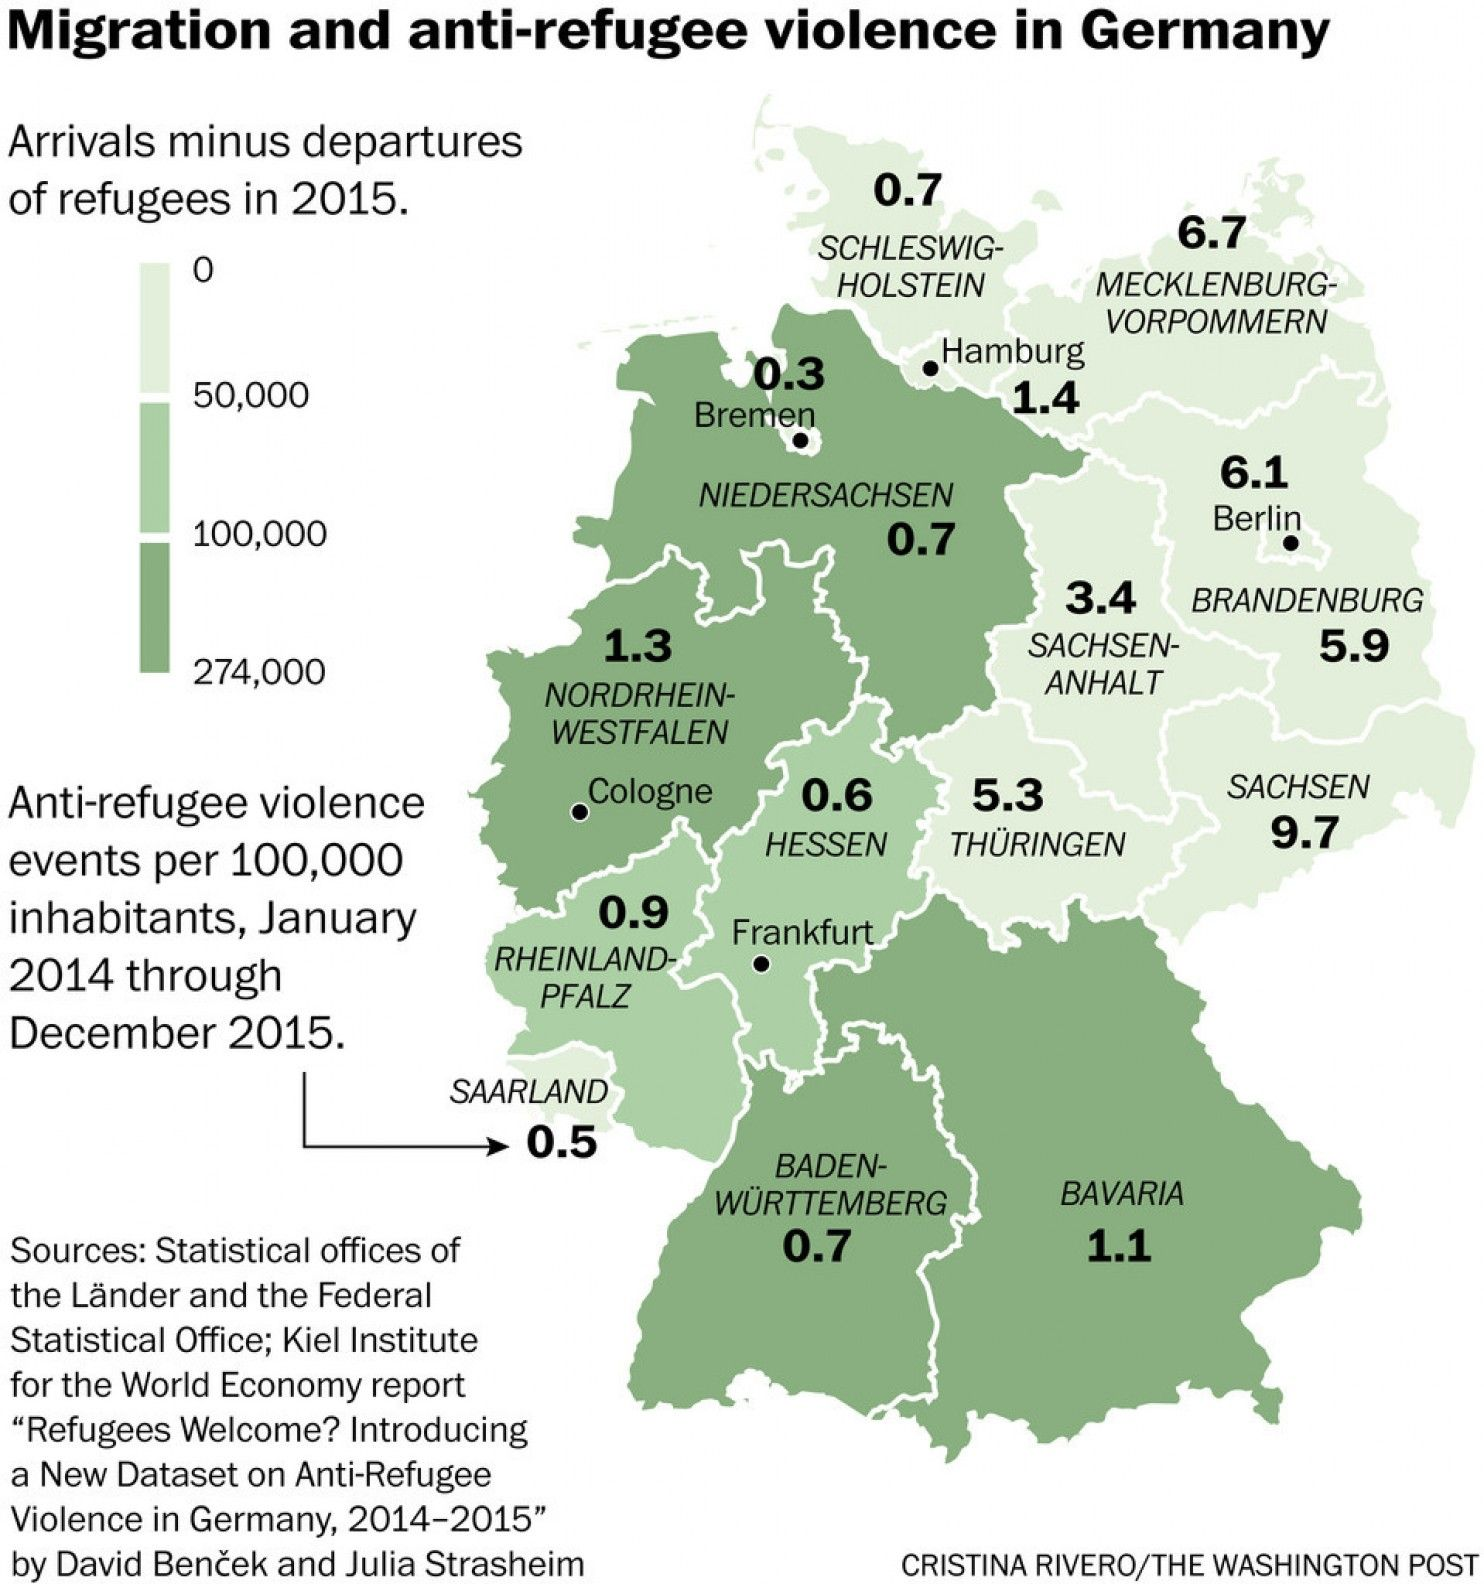 Germany Reunified 26 Years Ago But Some Divisions Are